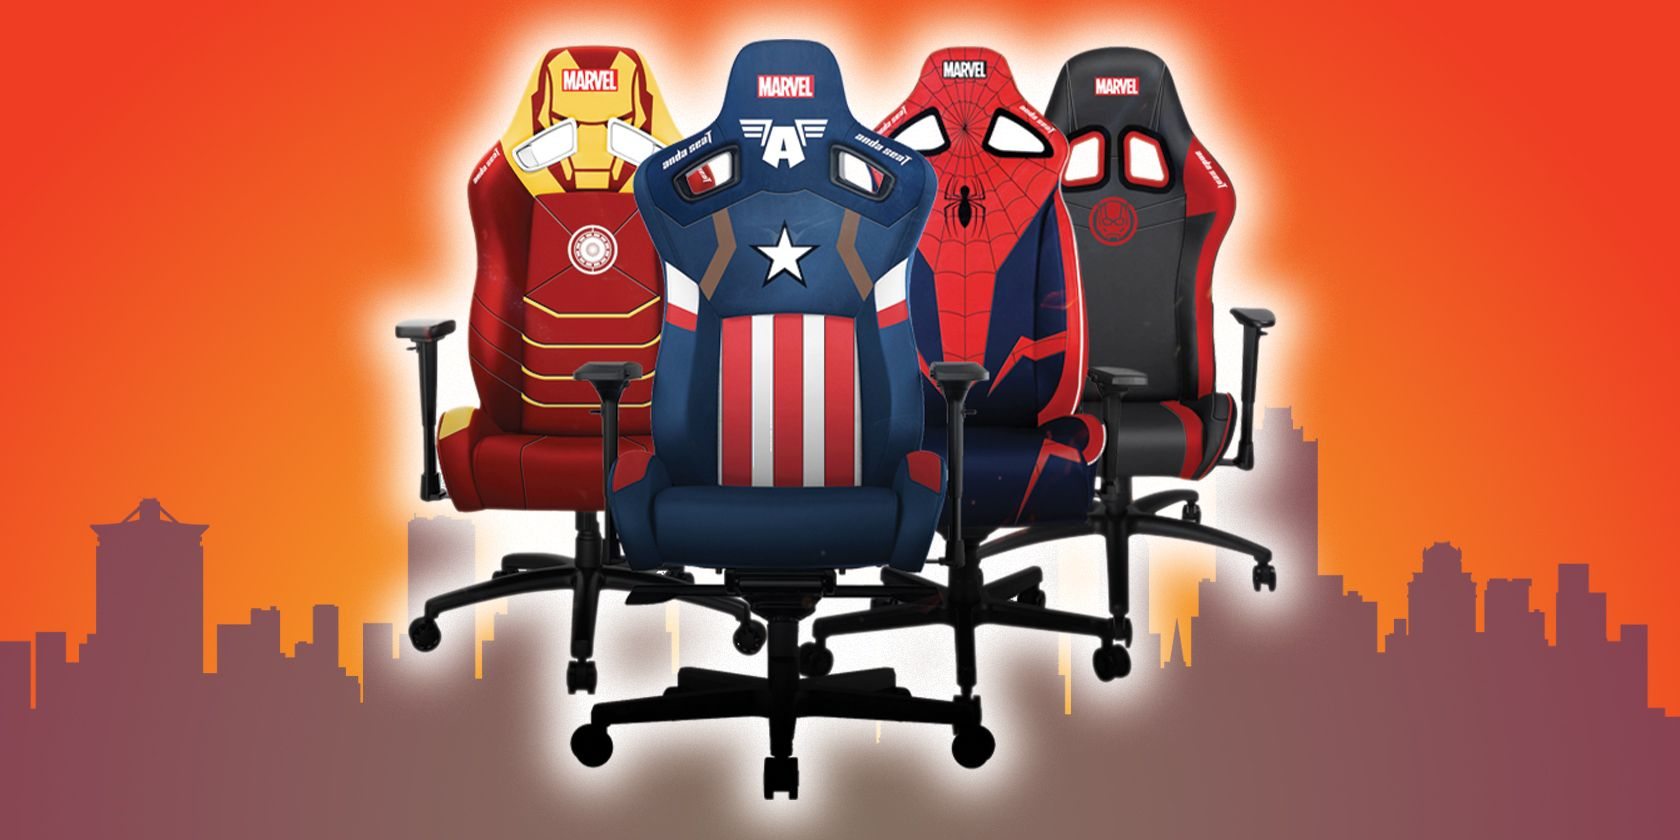 Assemble an Amazing Discount on AndaSeat's Avengers Gaming Chairs